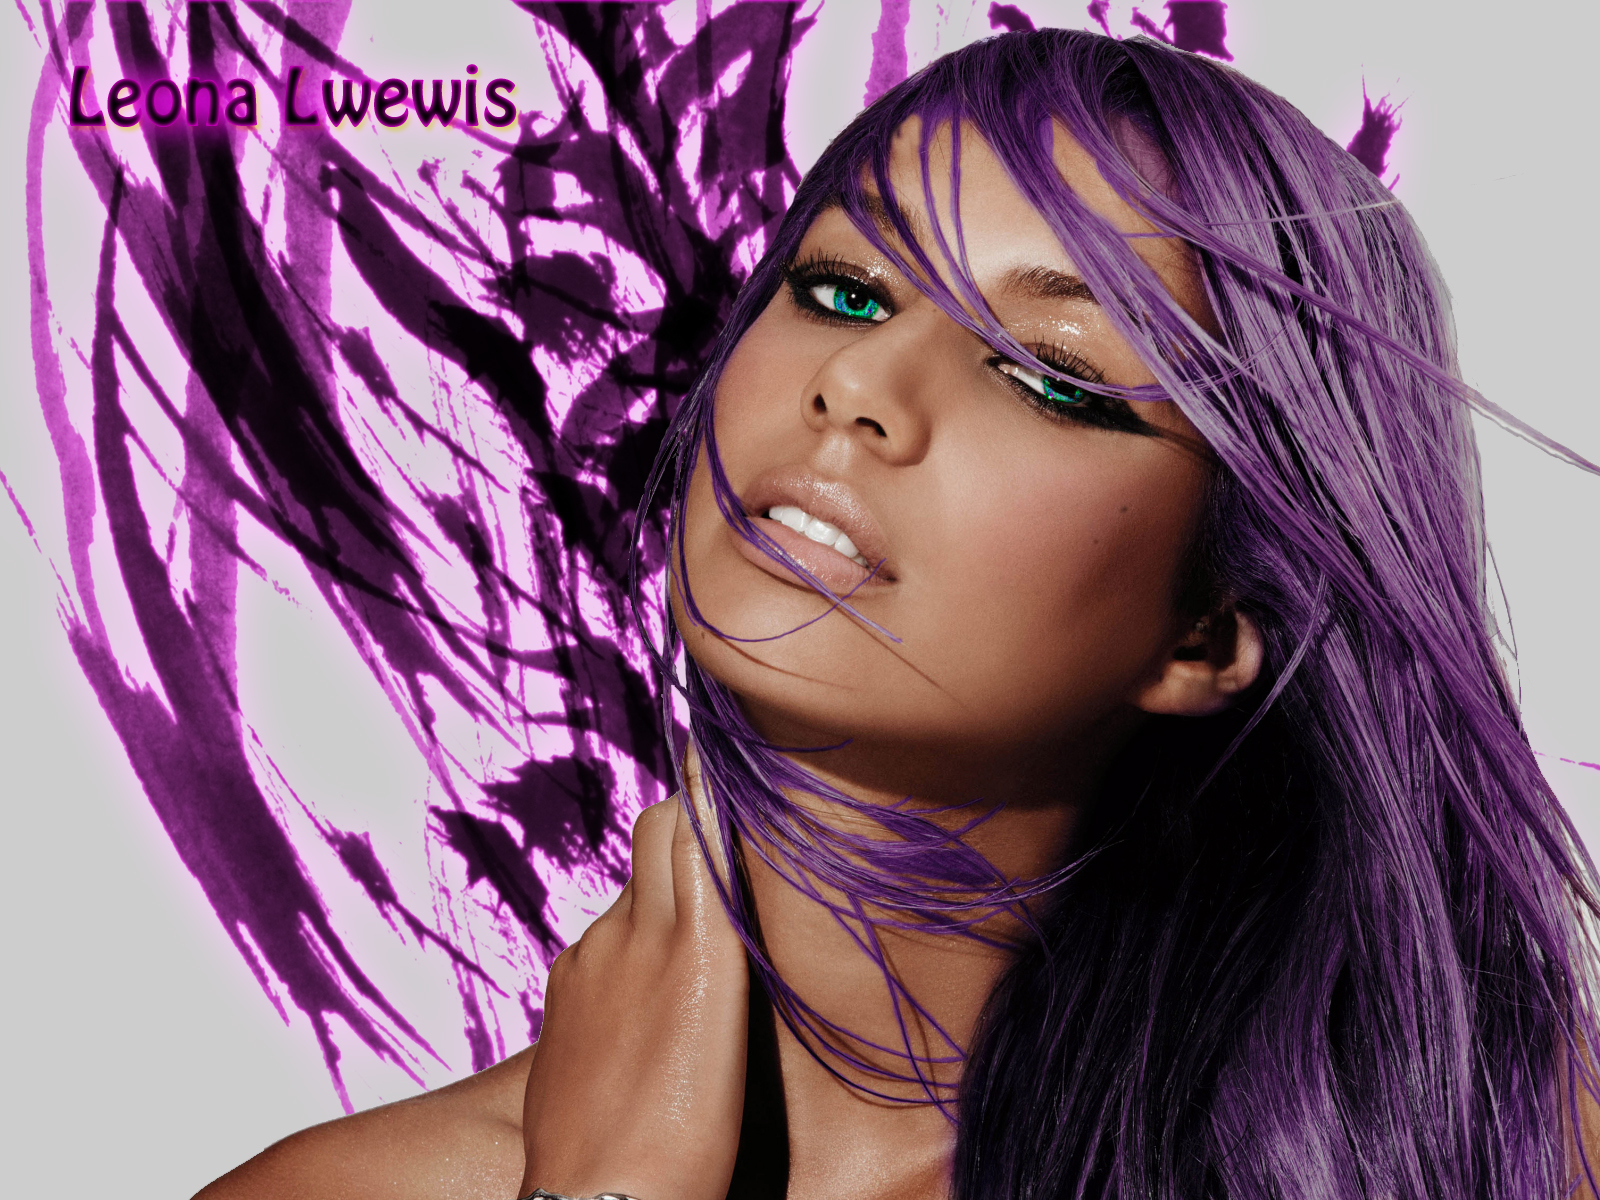 leona lewis whatever it takes download free